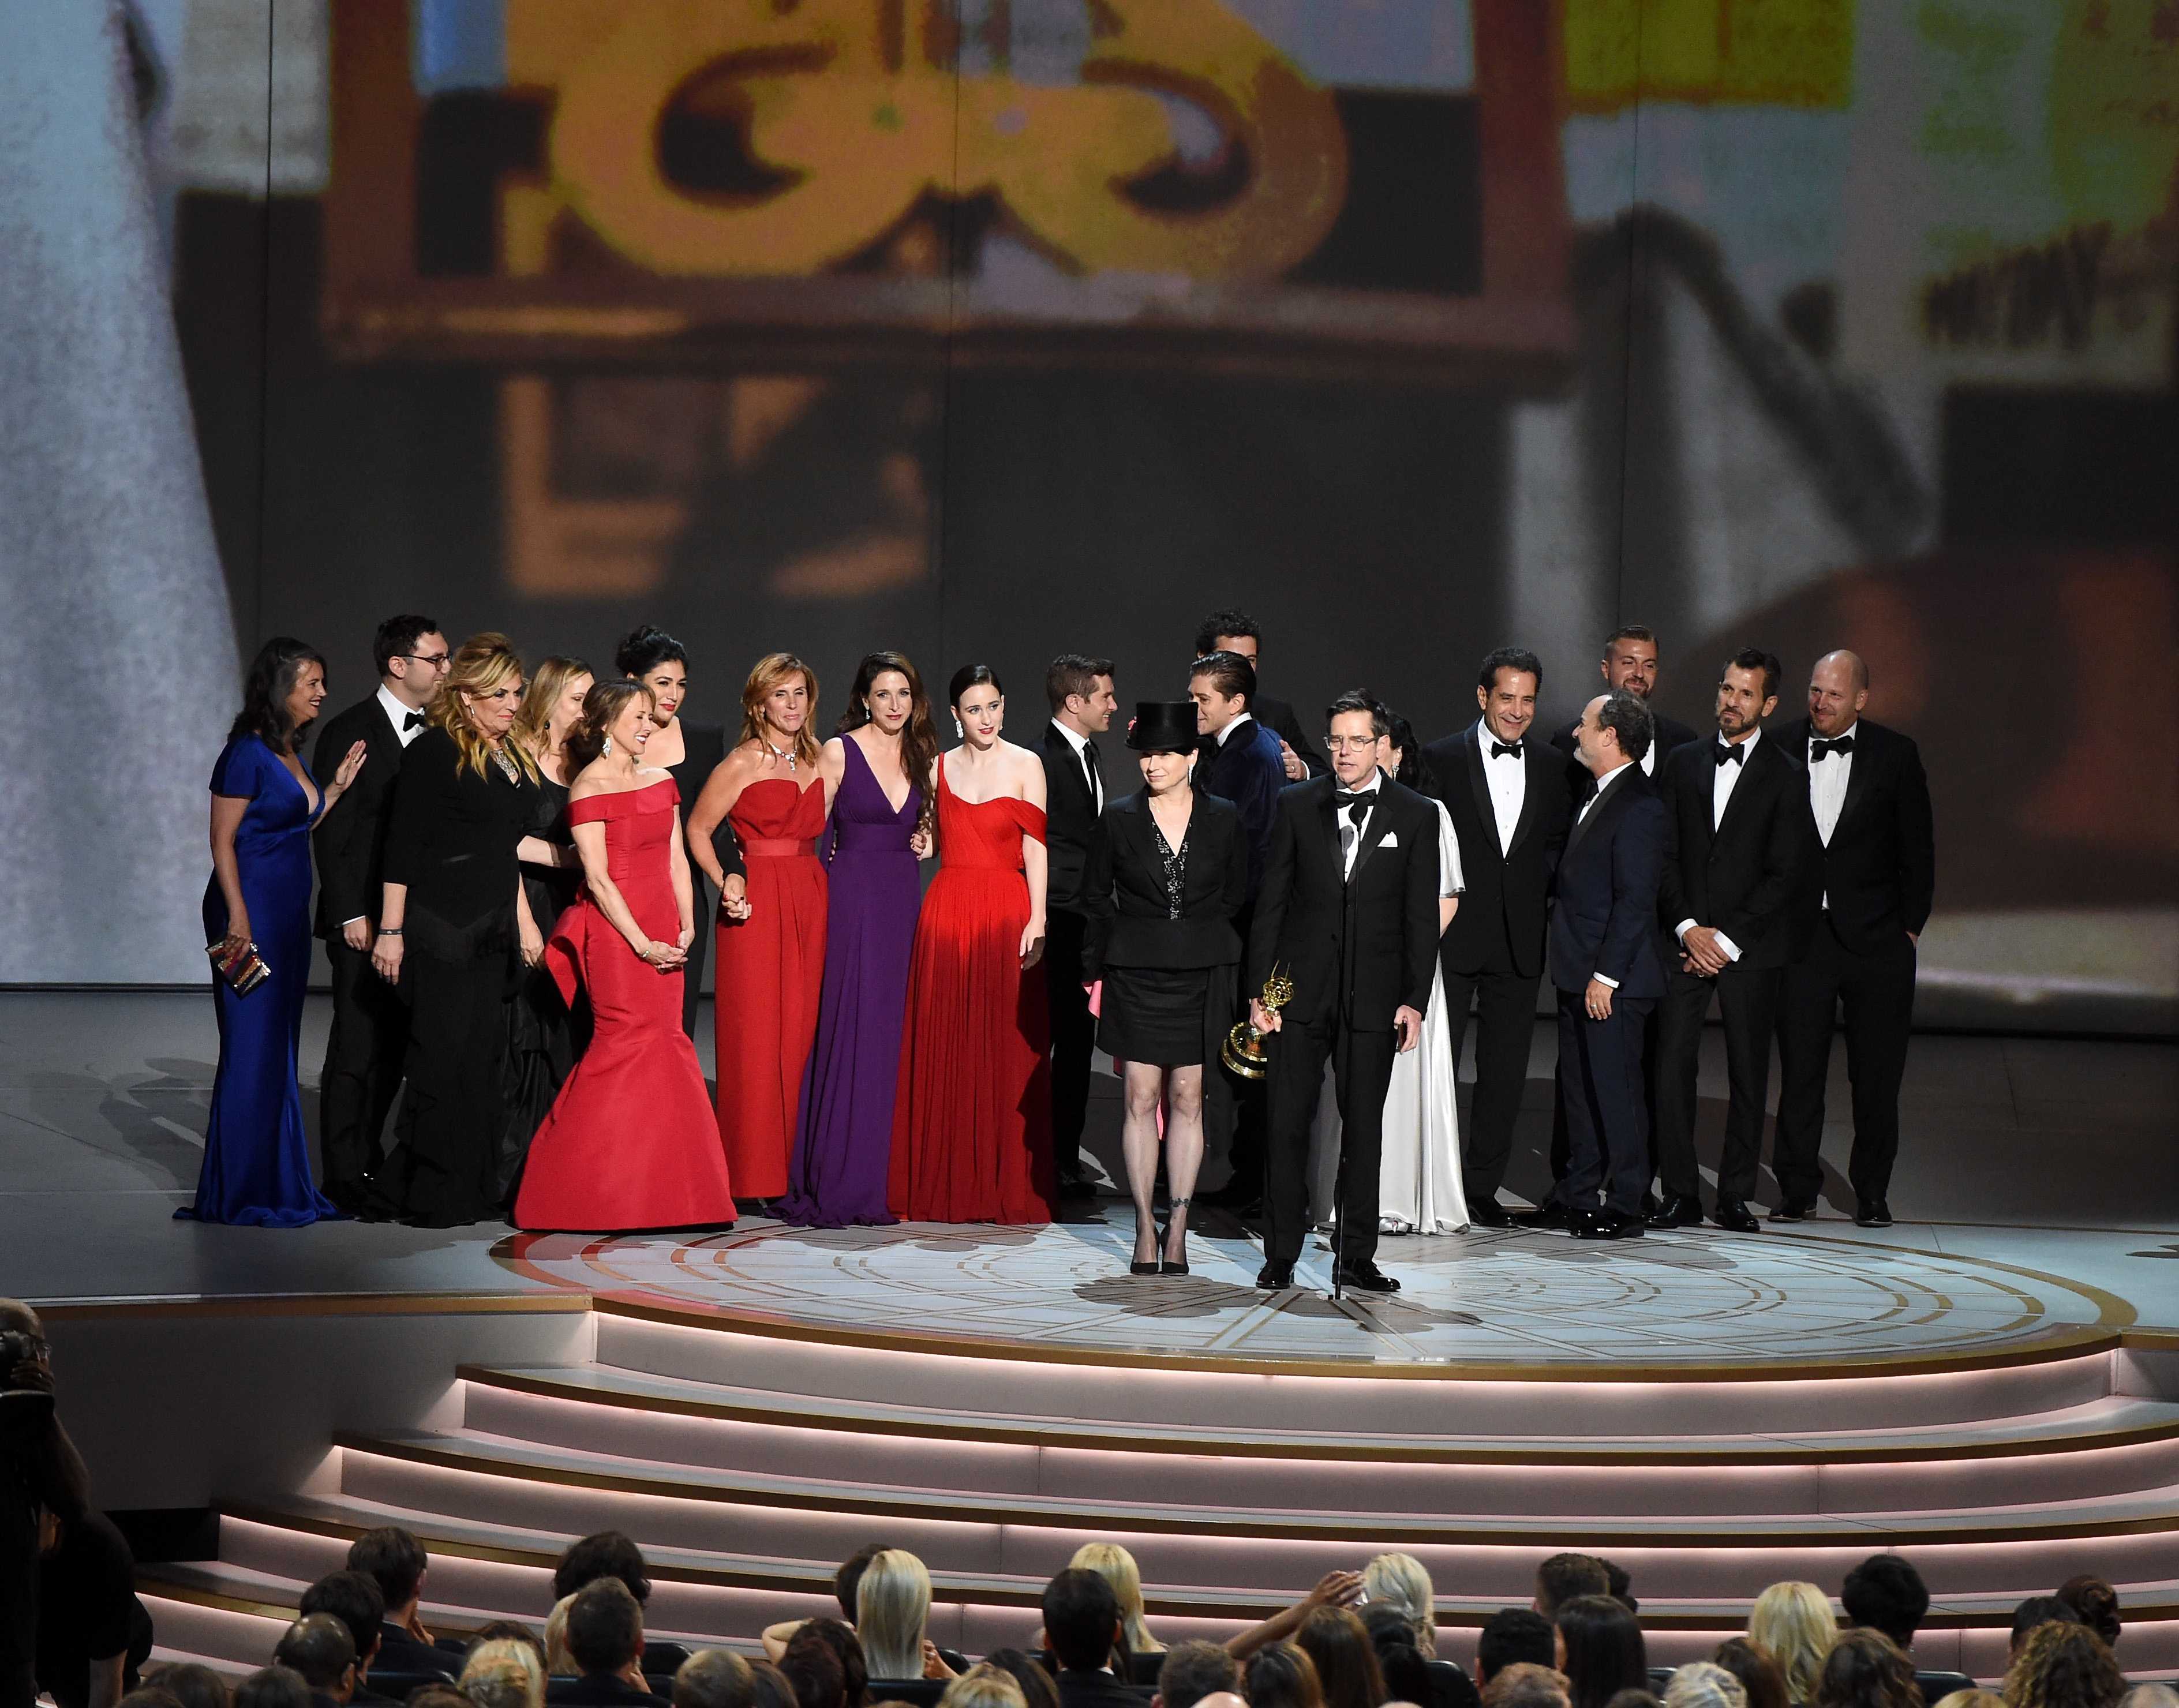 Amy Sherman-Palladino (front center L) and Daniel Palladino (front center R) and cast and crew accept the Outstanding Comedy Series award for 'The Marvelous Mrs. Maisel' onstage during the 70th Emmy Awards at Microsoft Theater on September 17, 2018 in Los Angeles, California. (Photo by Kevin Winter/Getty Images)